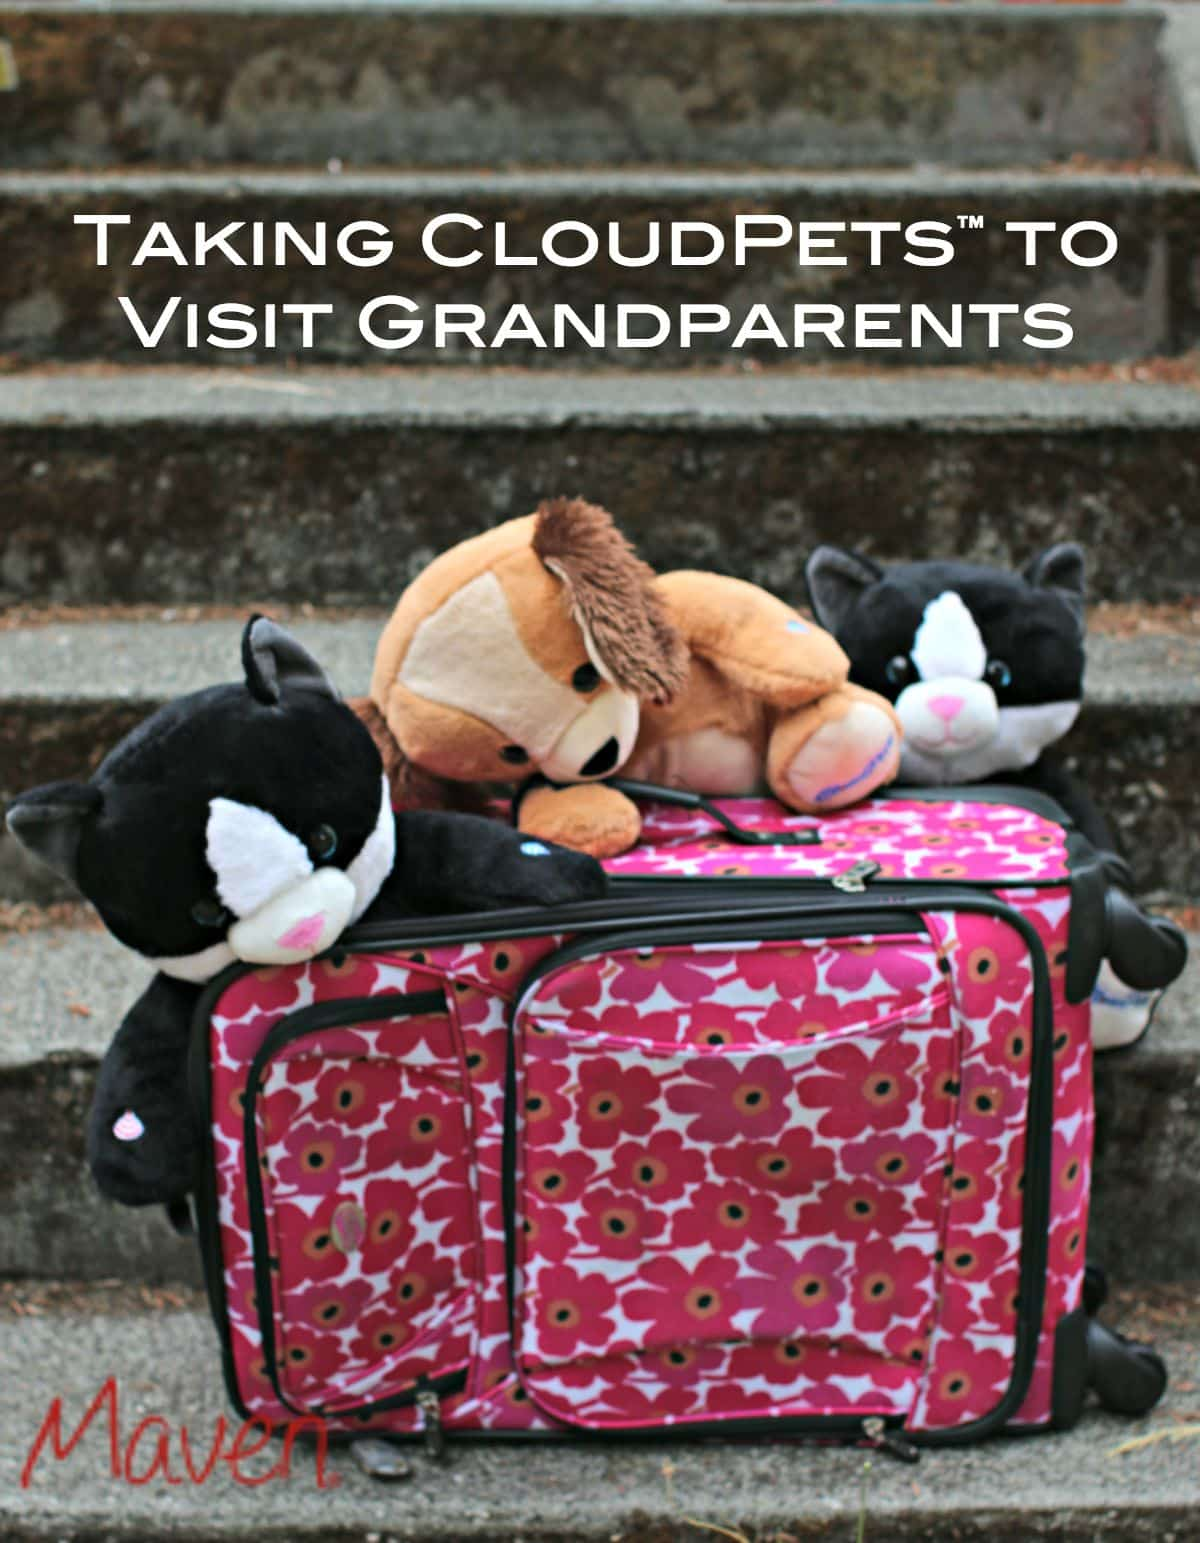 It's fun to take CloudPets™ to visit grandparents! Check out our travel tips too! #CloudPetsForever AD